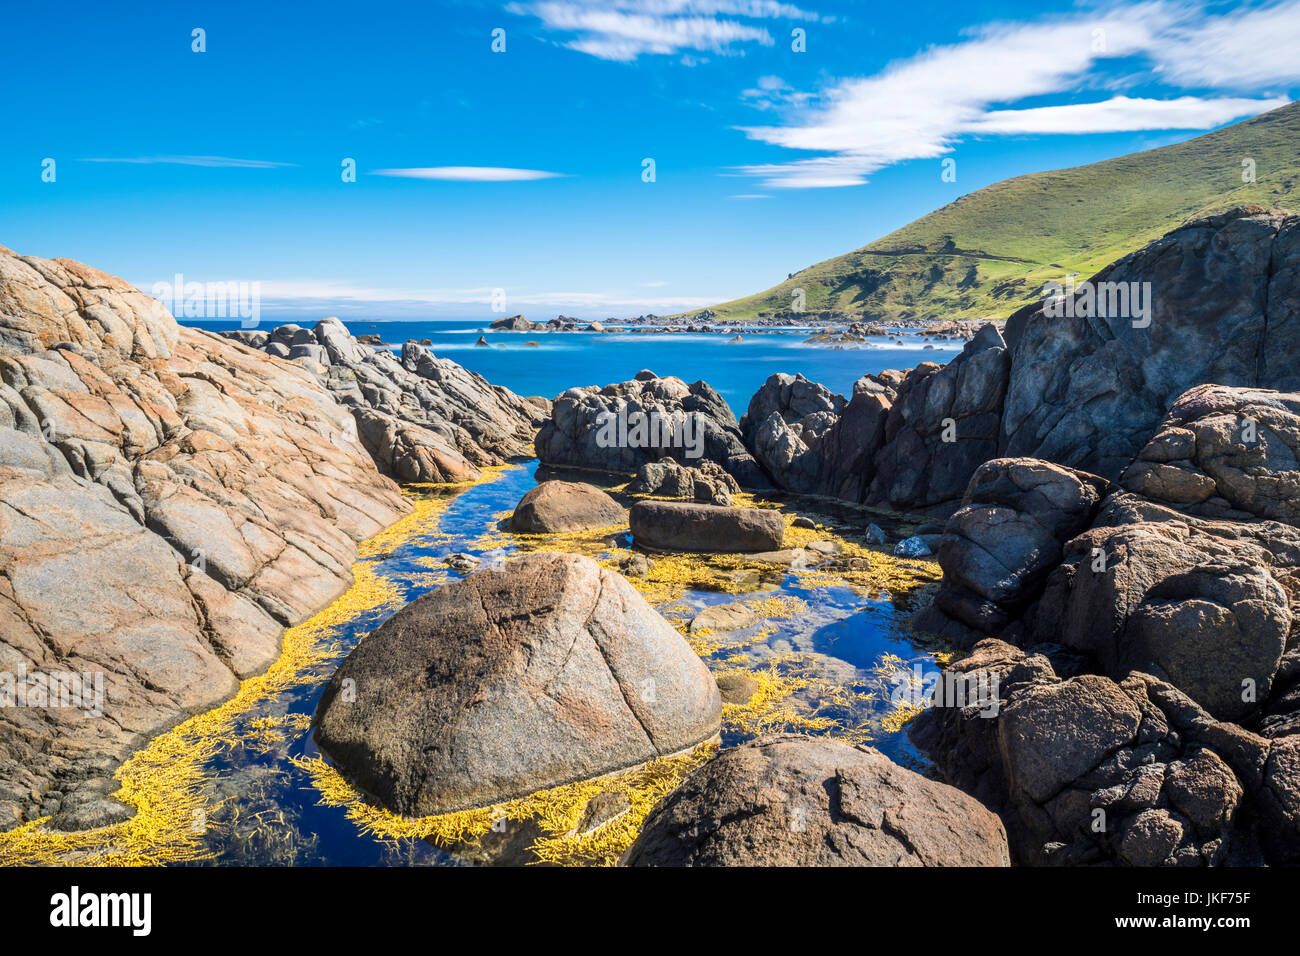 New Zealand, South Island, Southern Scenic Route, Orepuki, Cosy Nook Beach - Stock Image